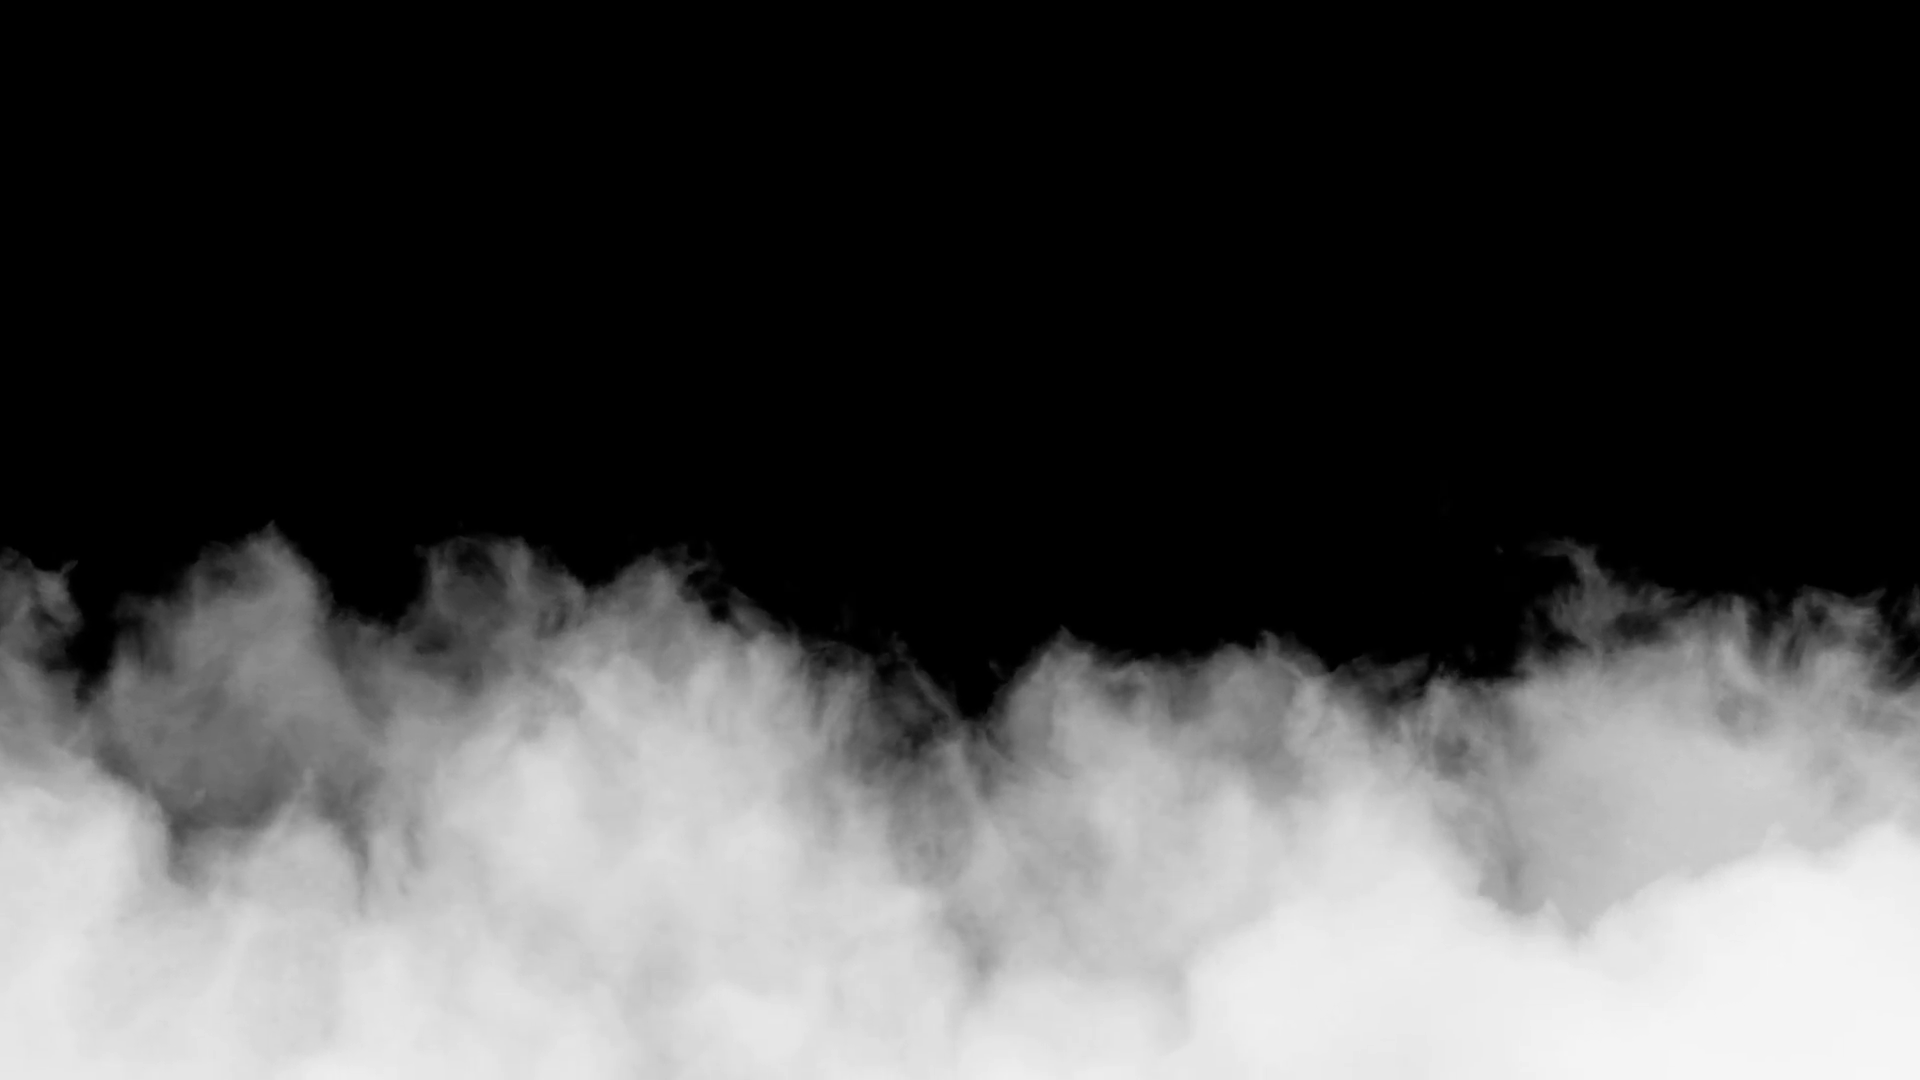 smoke hd png transparent smoke hd png images pluspng editing background light background images iphone background images transparent smoke hd png images